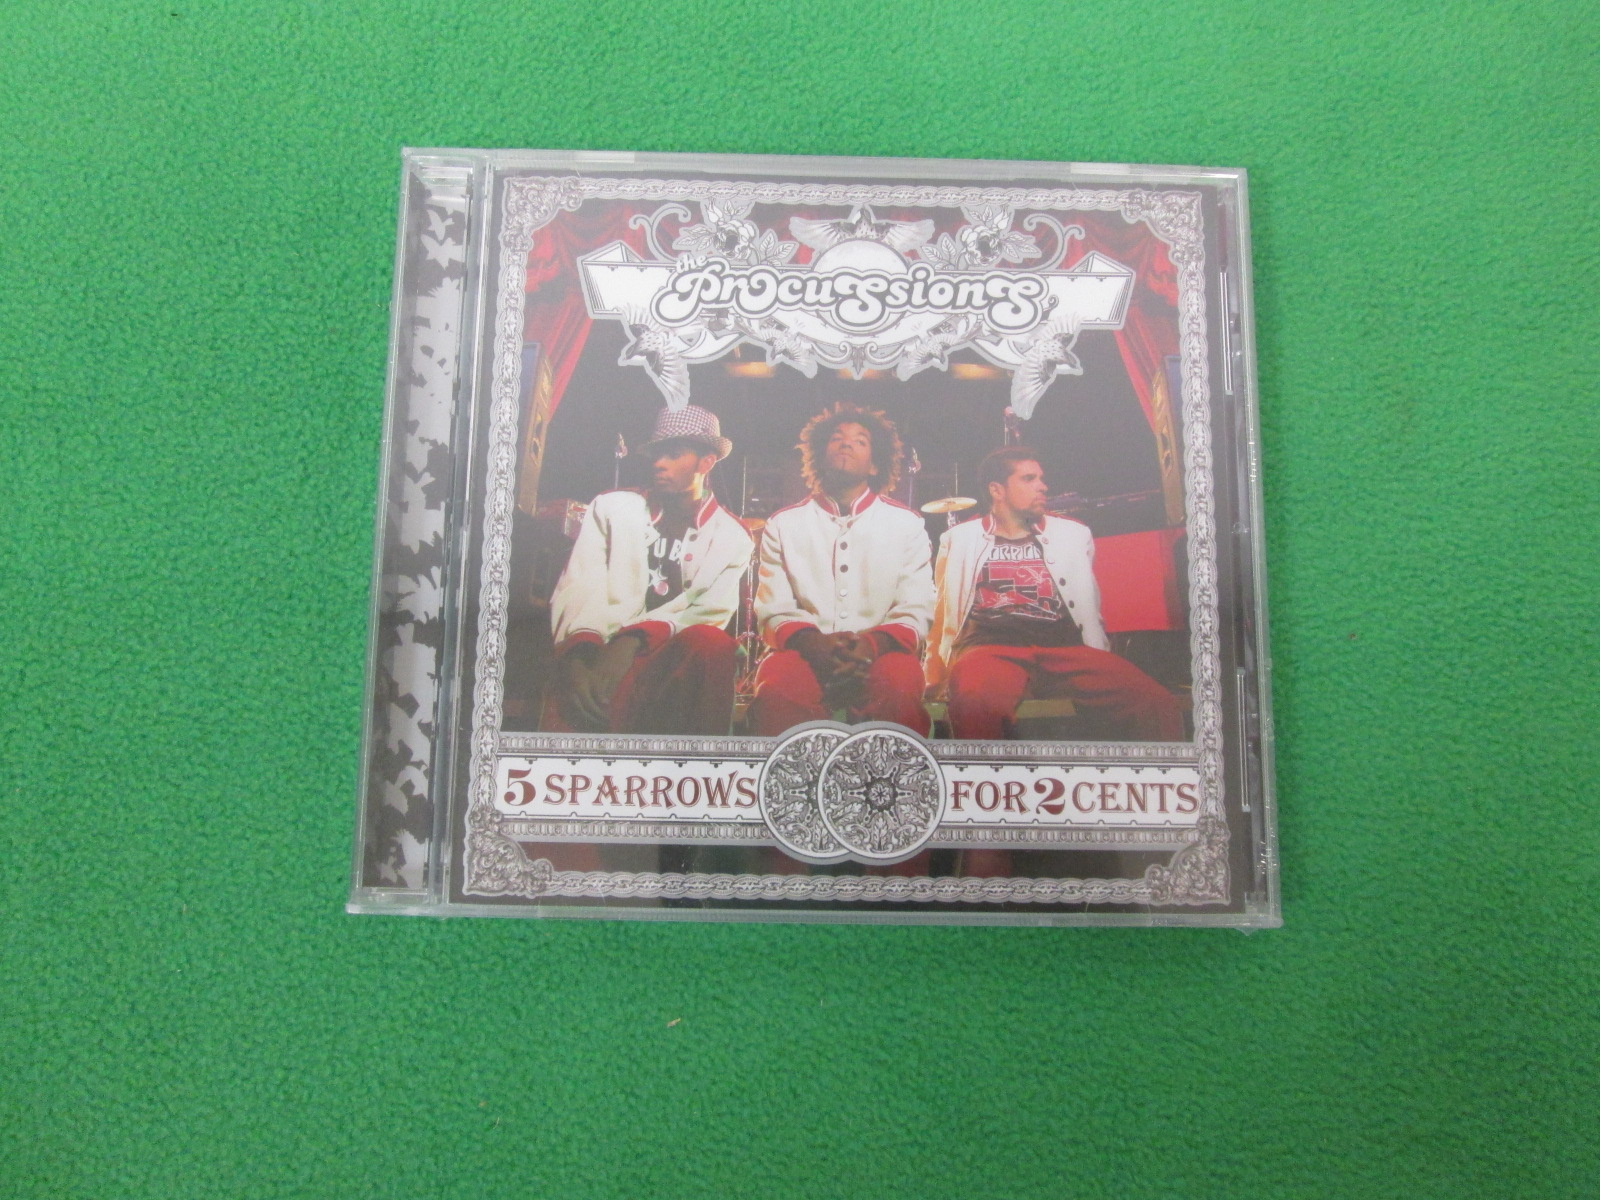 5 Sparrows For 2 Cents By The Procussions On Audio CD